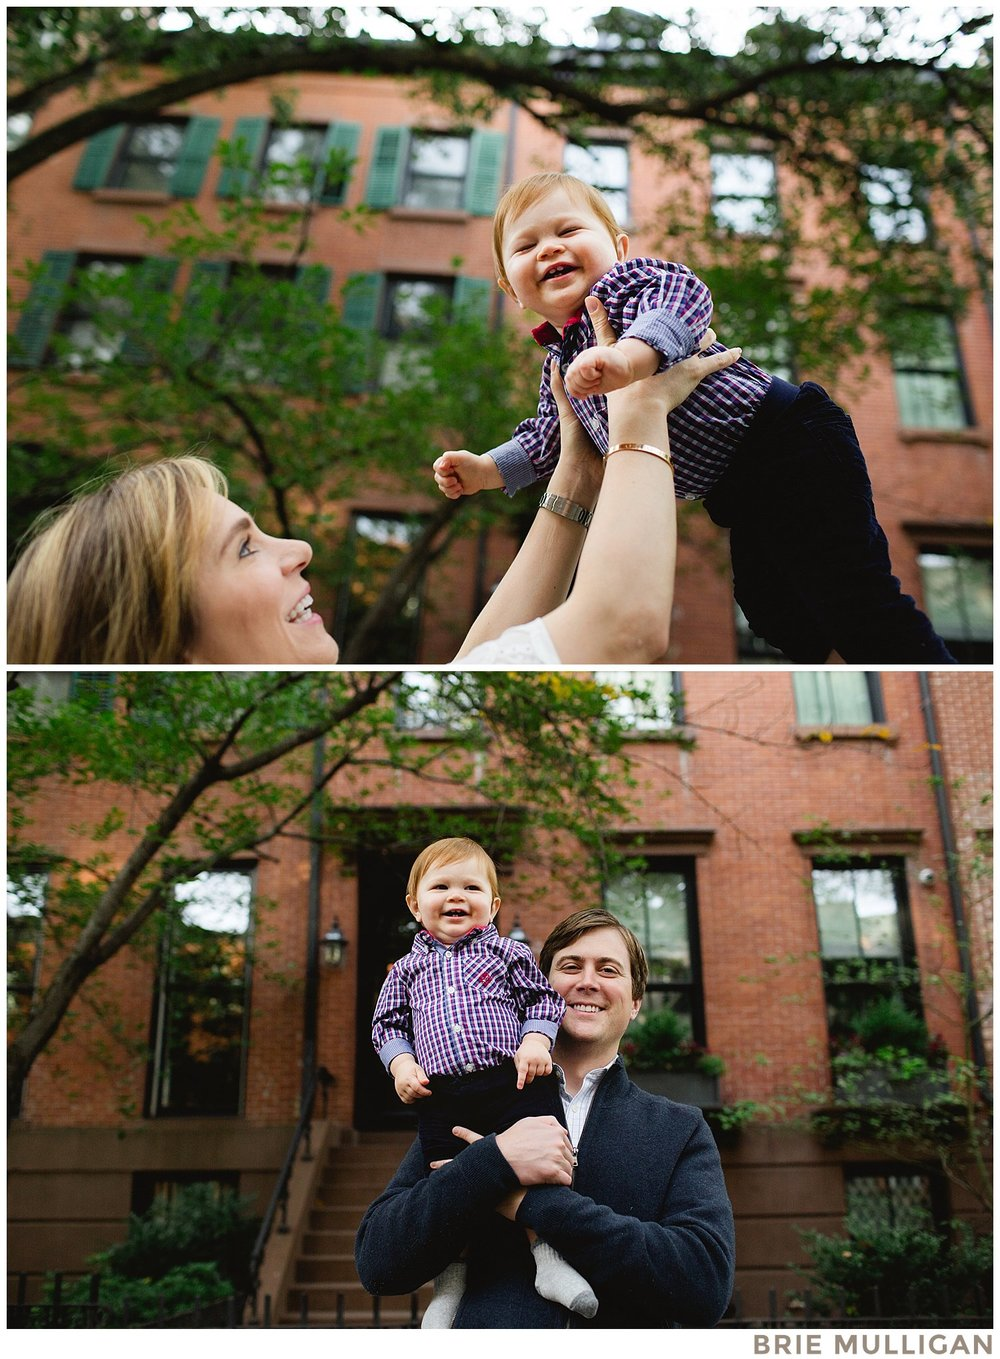 Brie-Mulligan-Family-and-Newborn-Photographer-NYC-and-Northern-NJ_0123.jpg